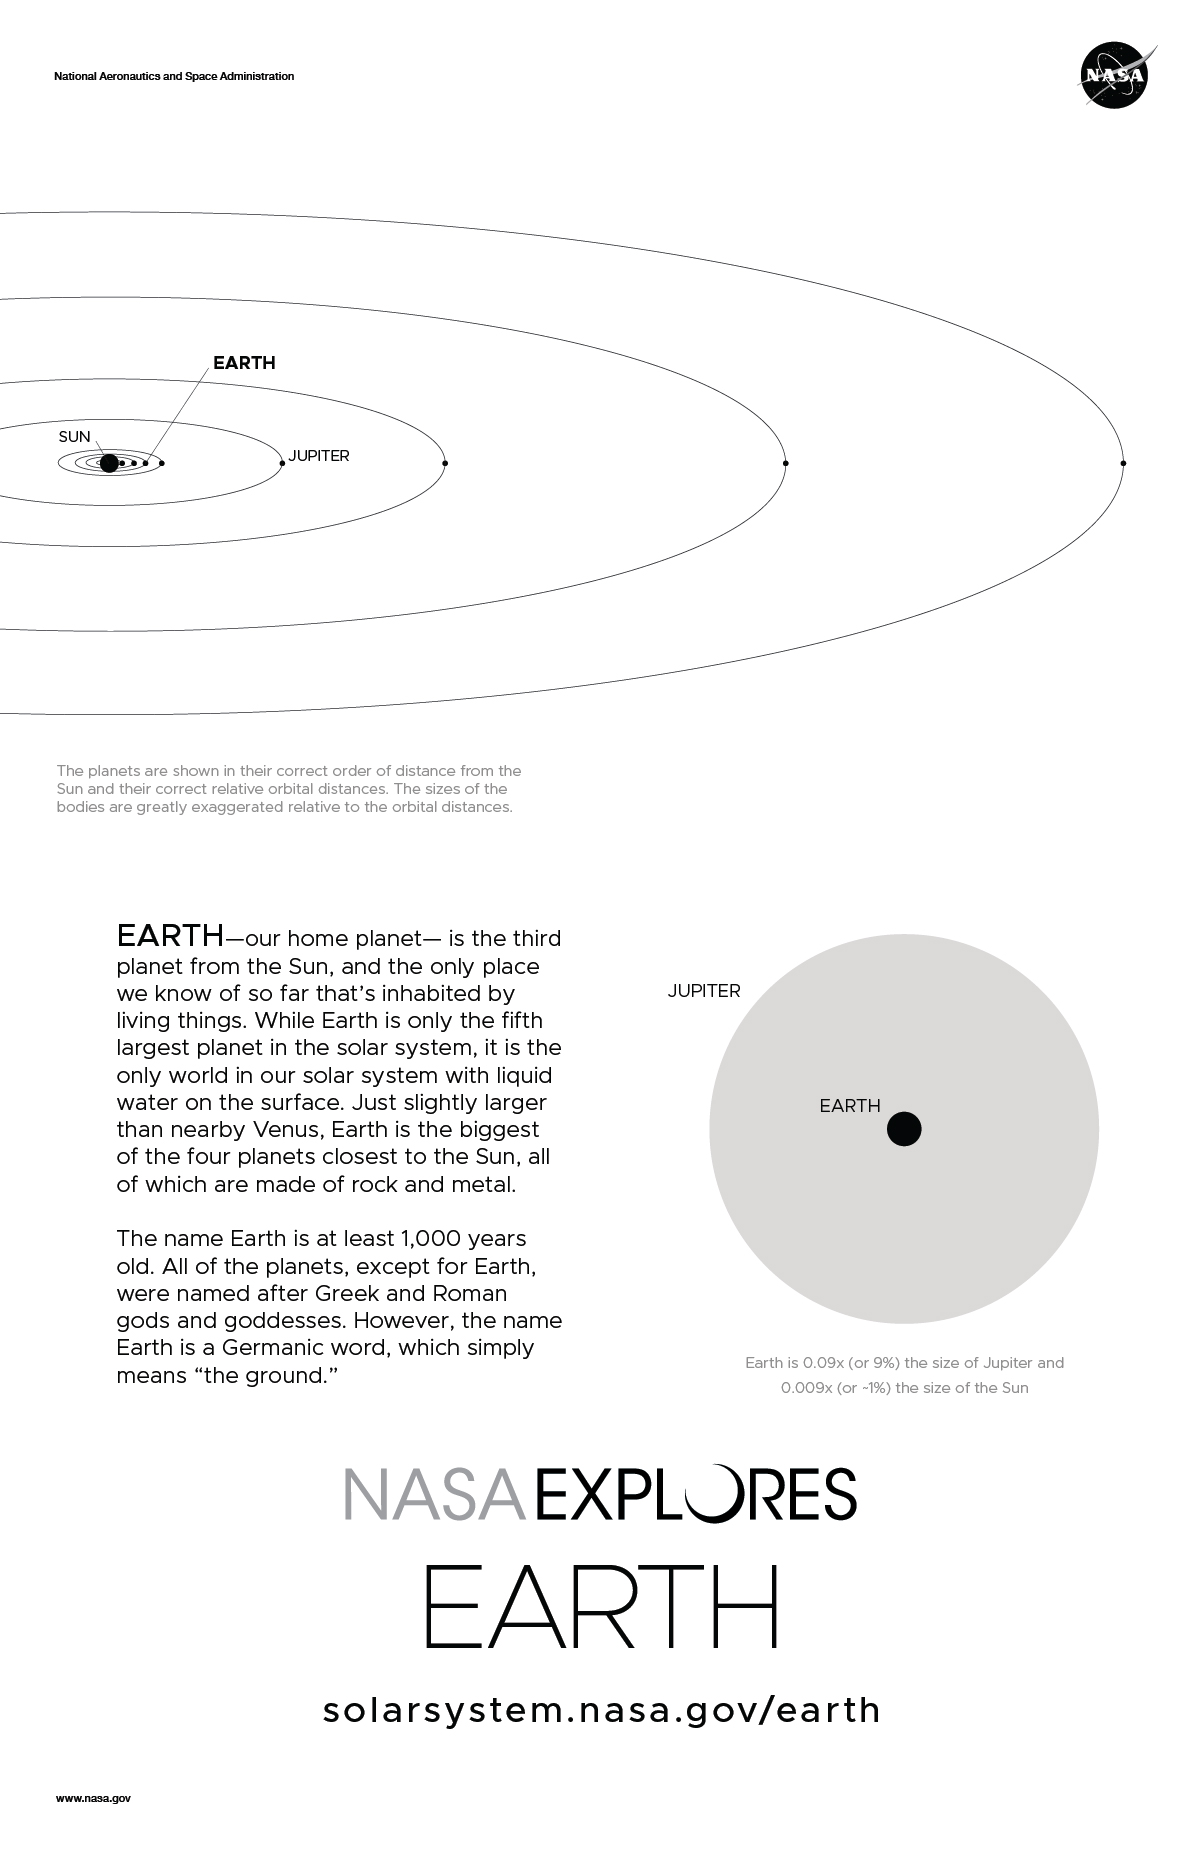 Back of Earth Poster includes size and orbit diagram.